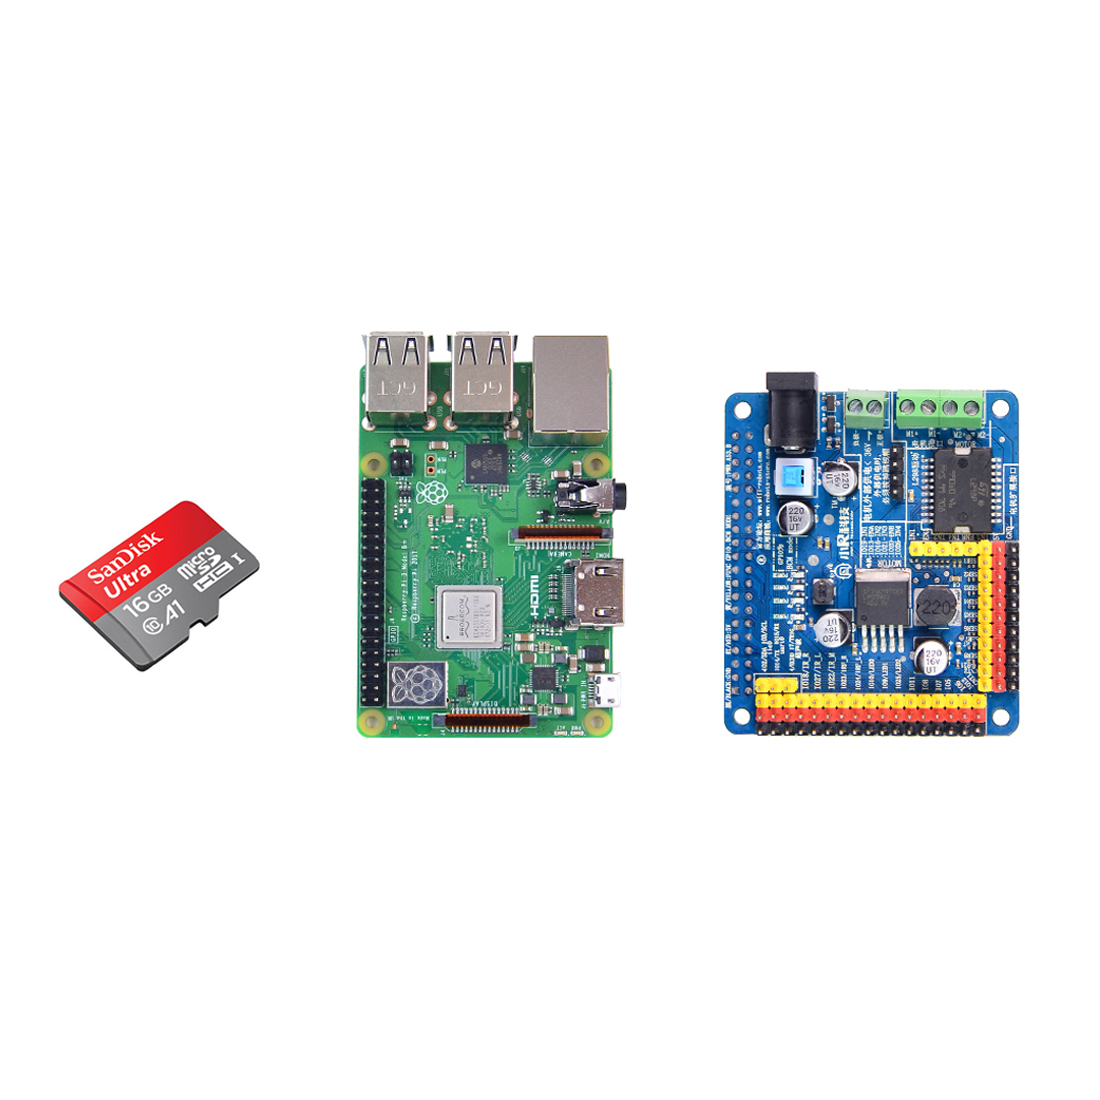 2GB RAM Raspberry PI Development Board With Expansion Board And 16GB Memory Card 2020 New Arrival